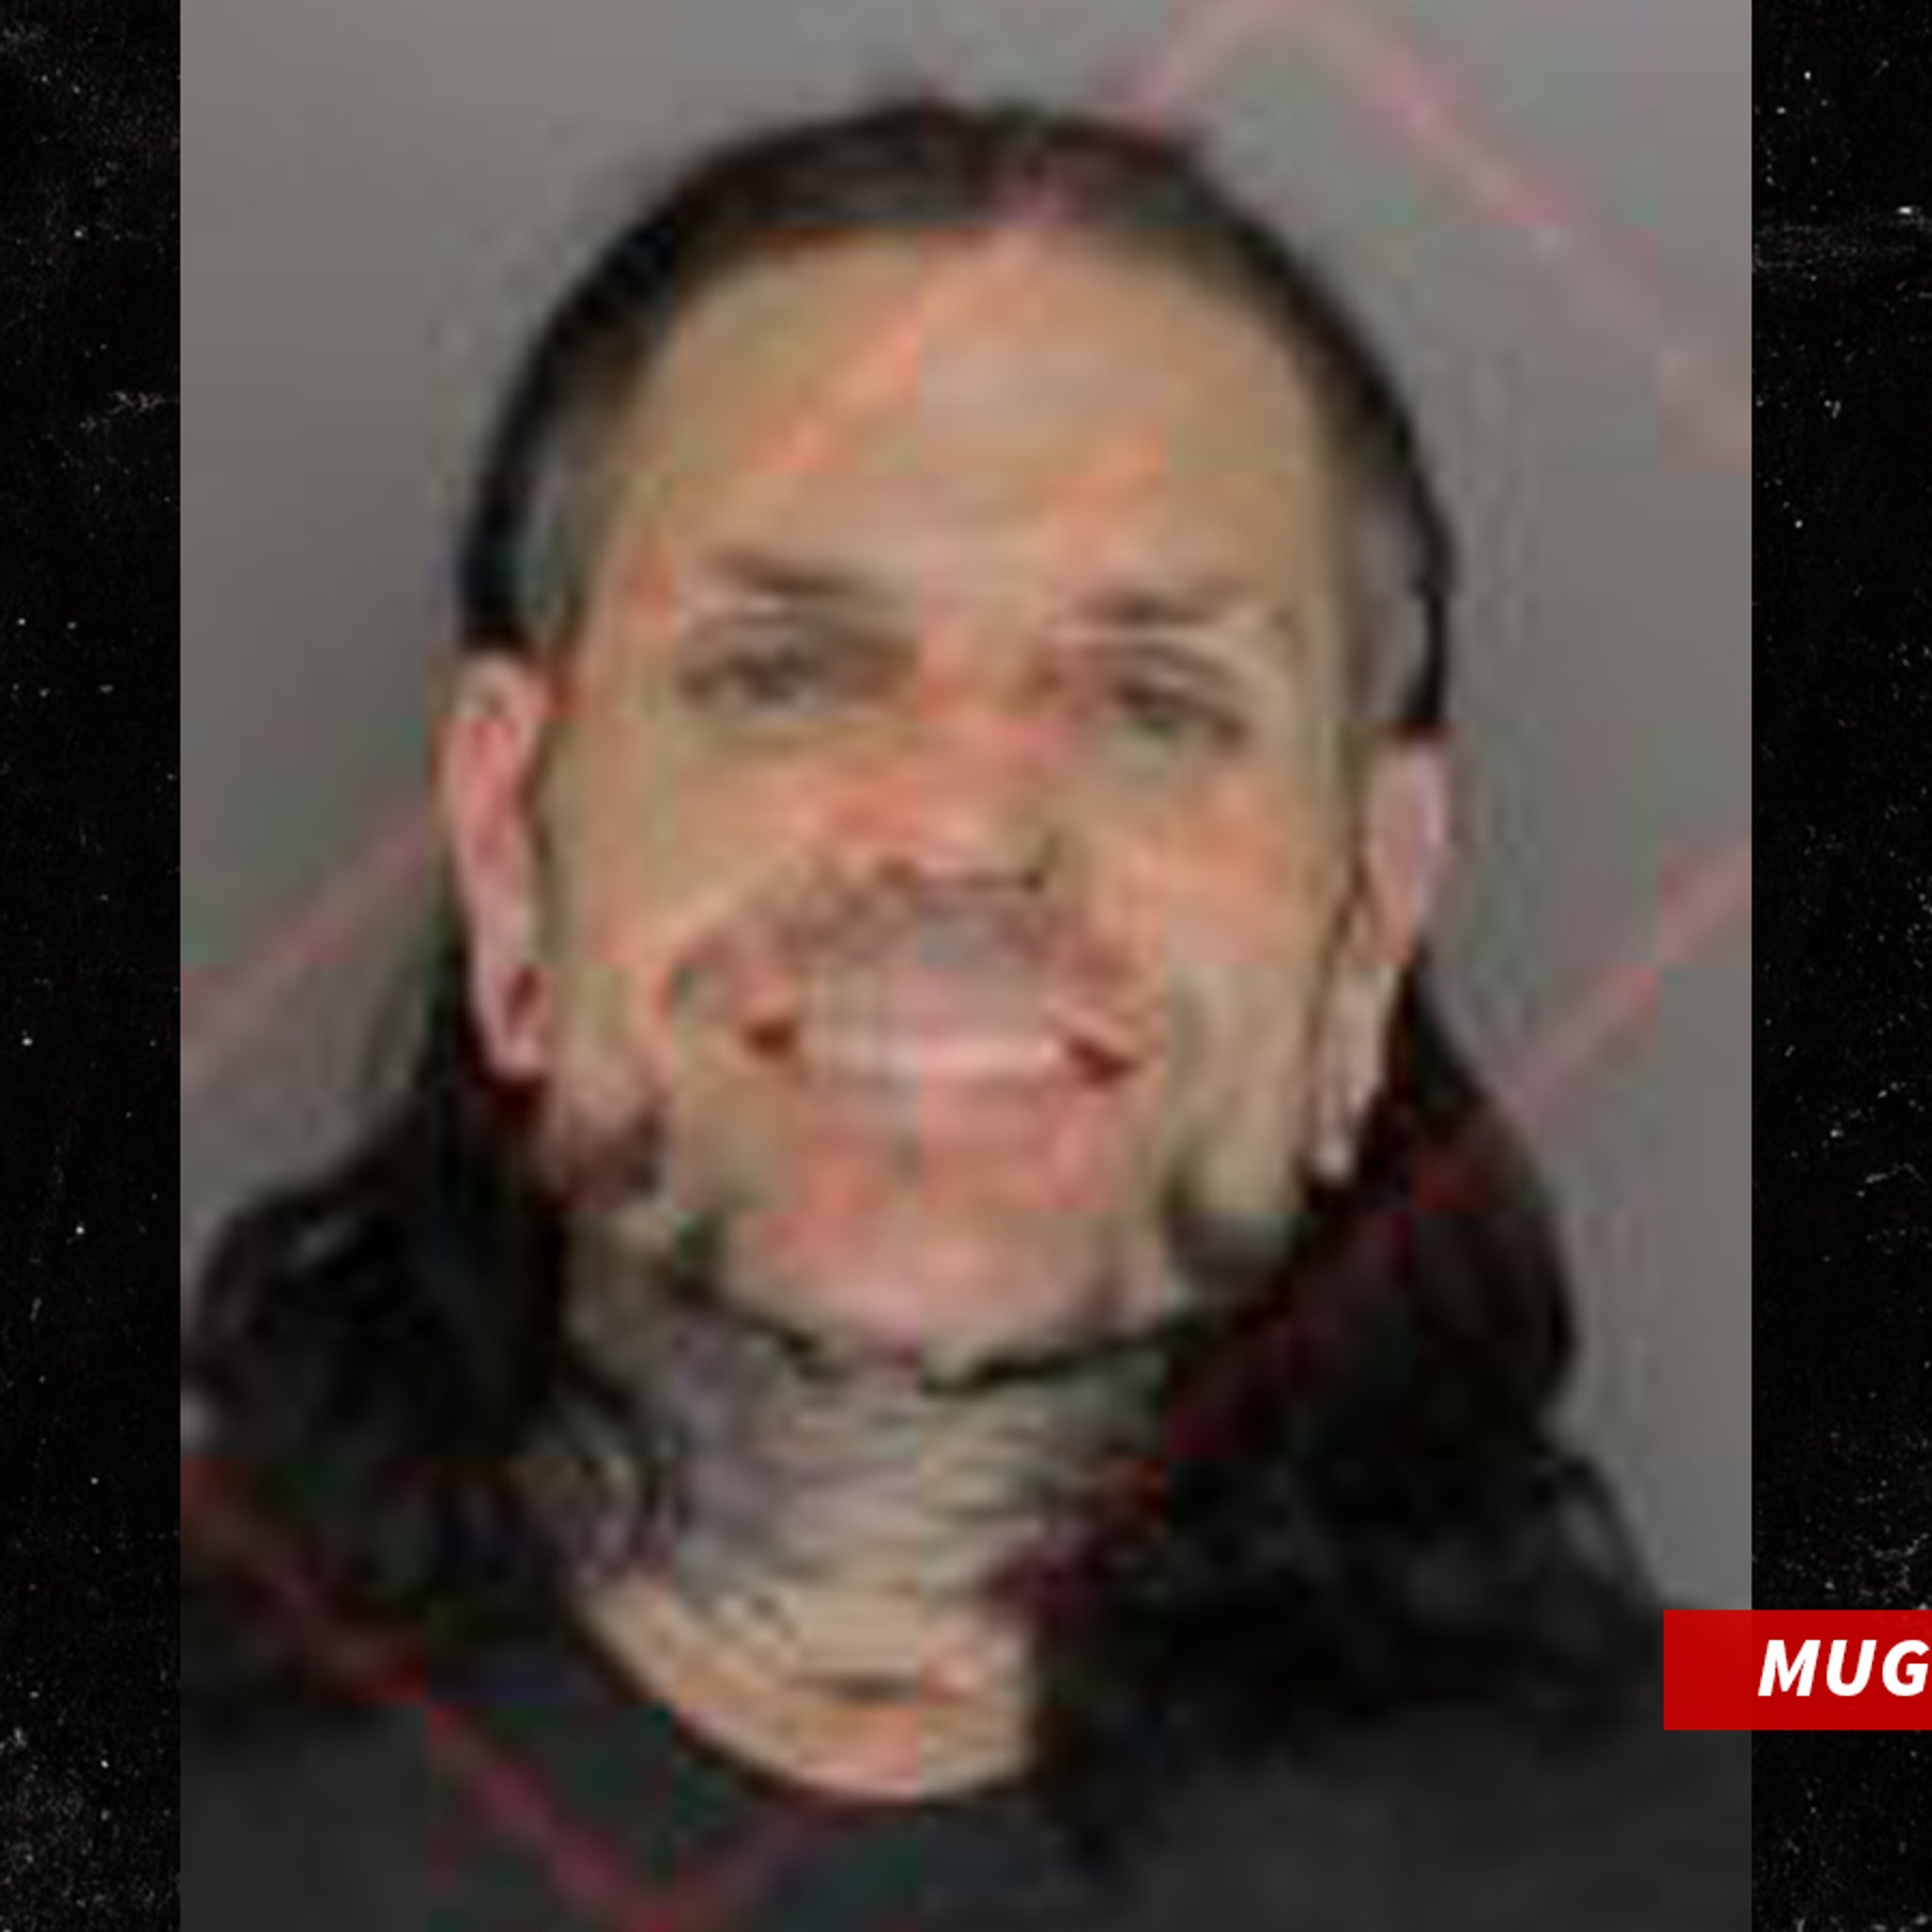 WWE's Jeff Hardy Had Bloody Nose During DWI Arrest From 'Fight with Wife'